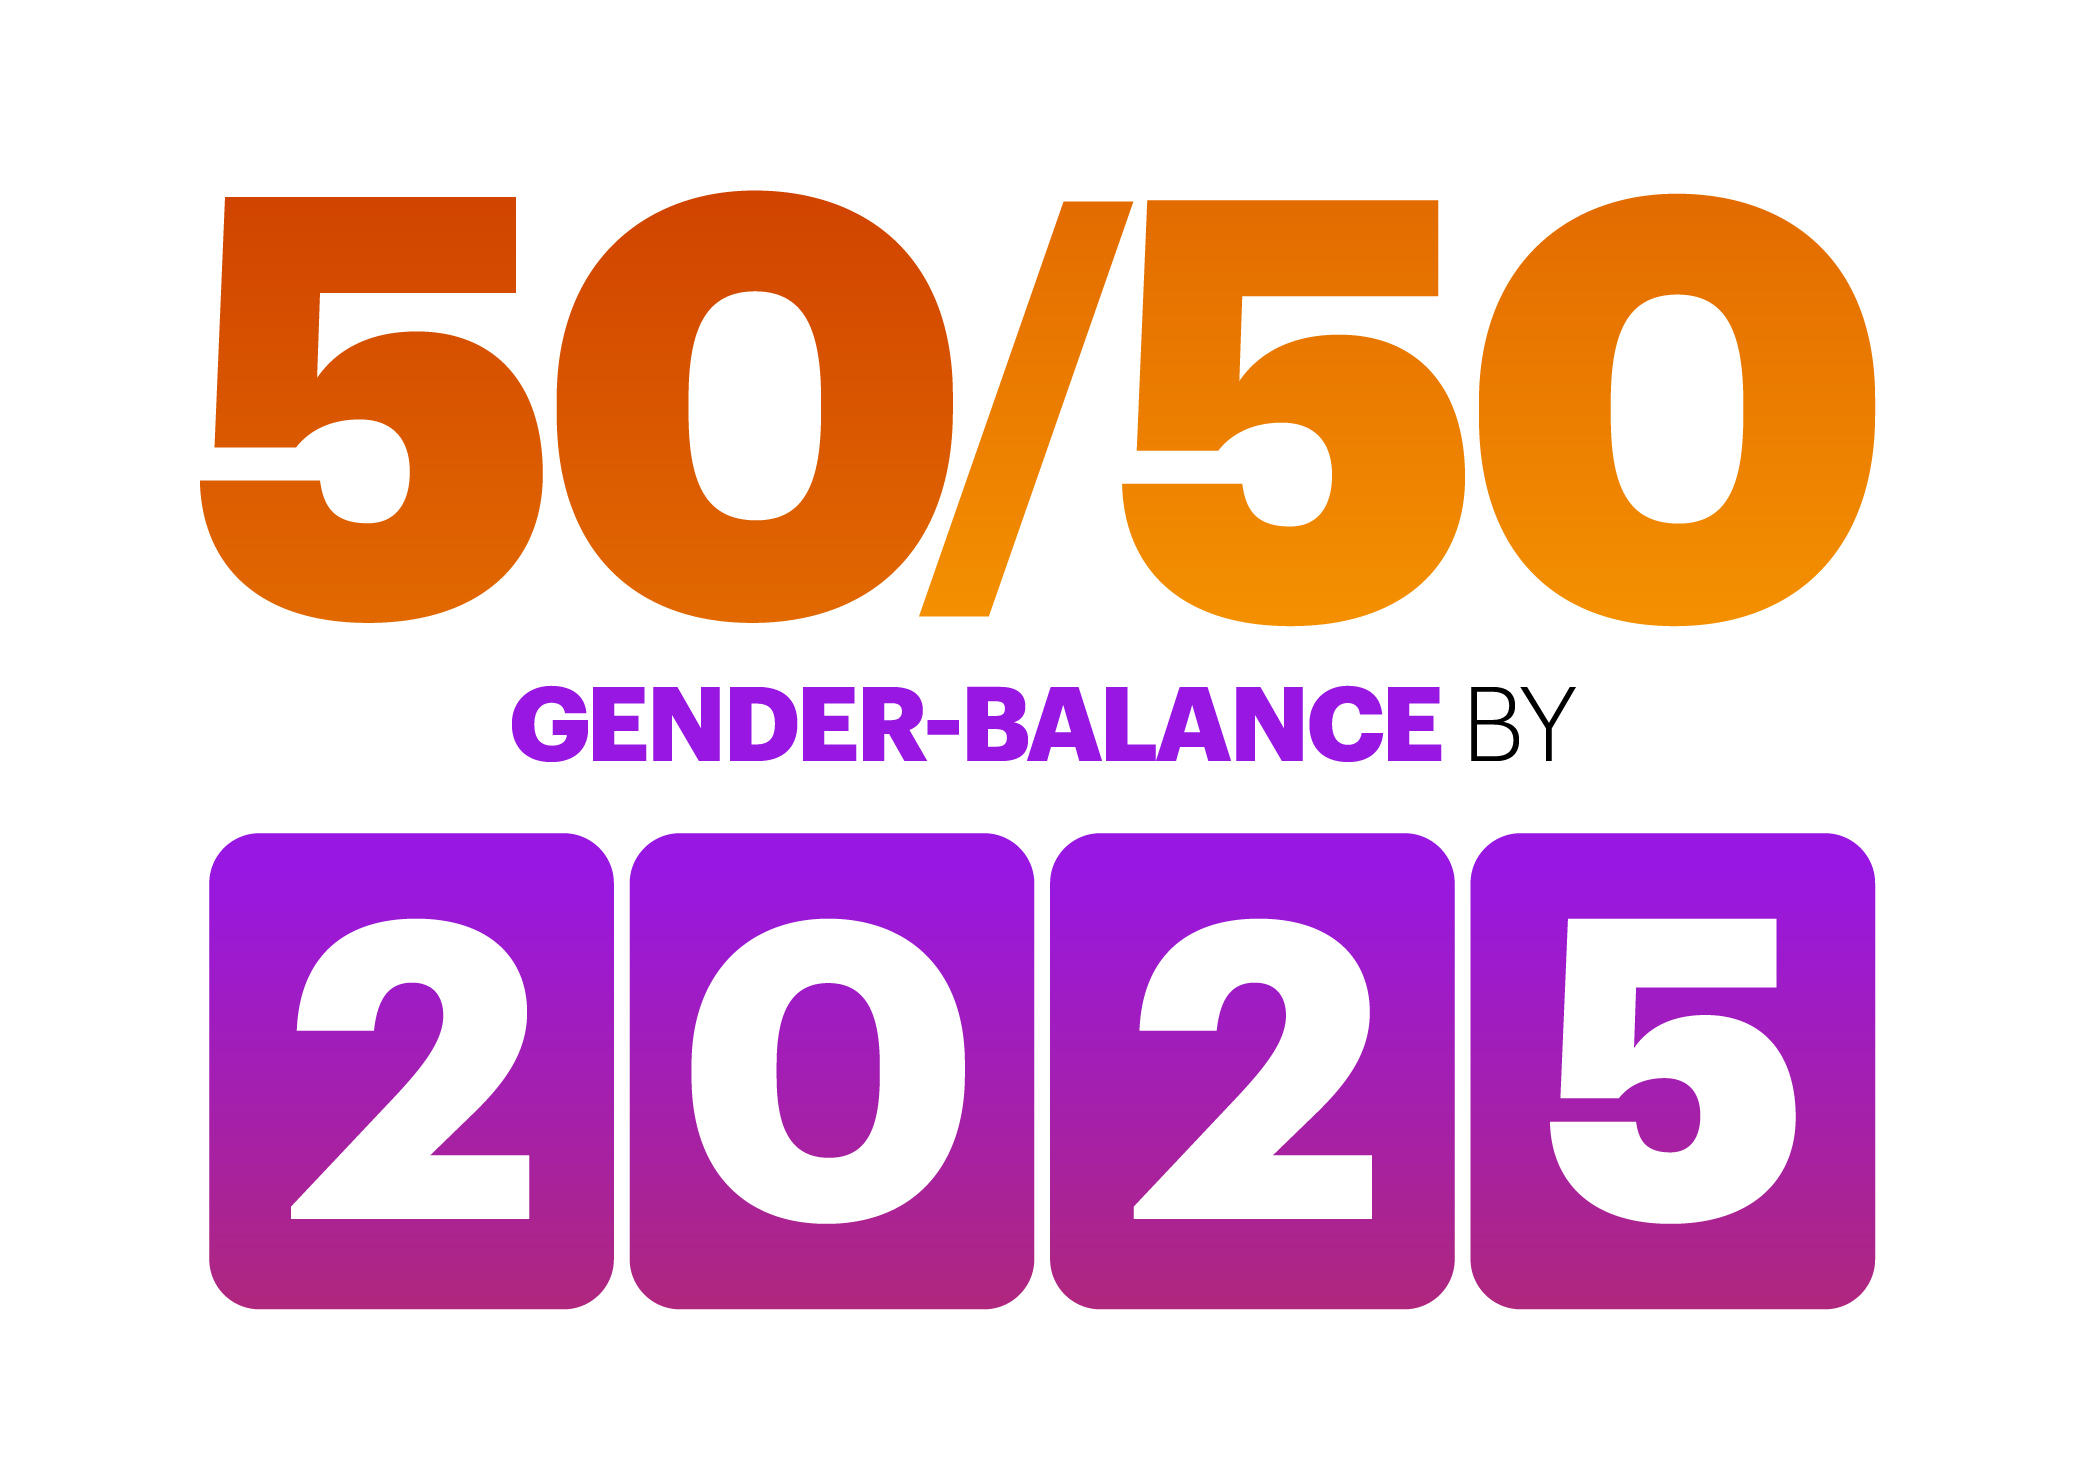 Accenture will achieve a gender-balanced workforce, with 50 percent women and 50 percent men, by 2025. (Graphic: Business Wire)